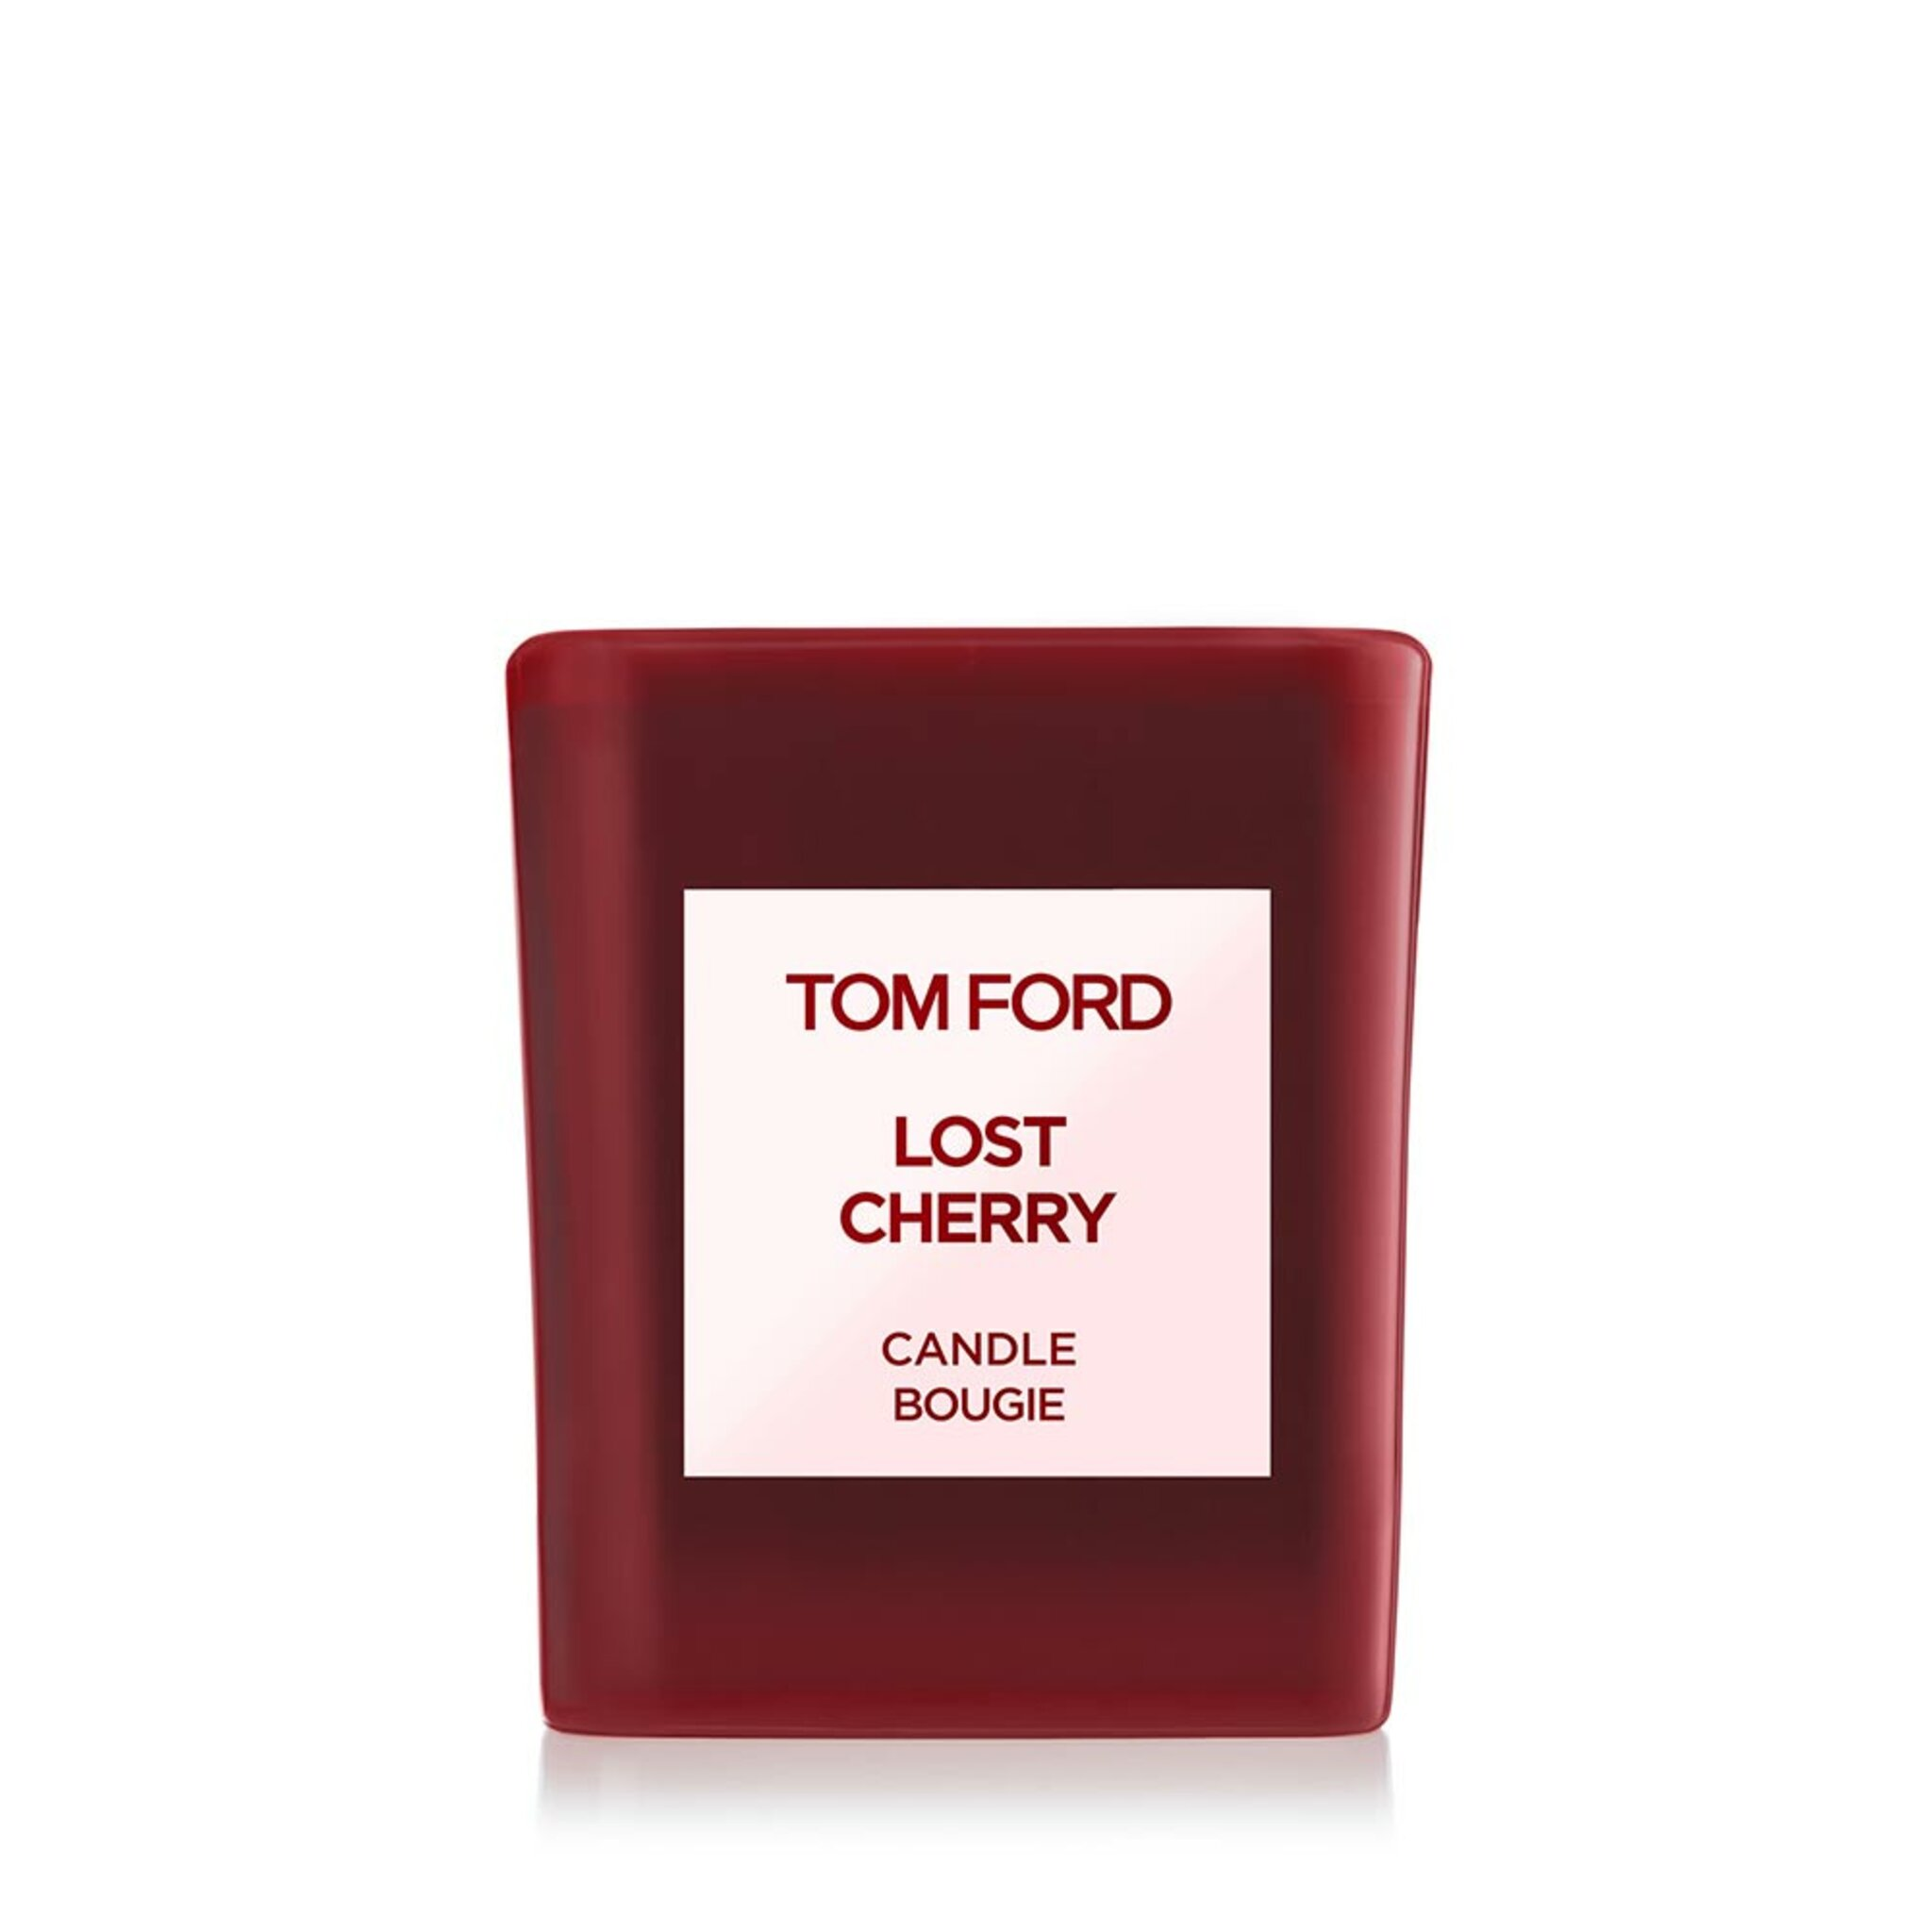 Lost Cherry Candle, 595 g